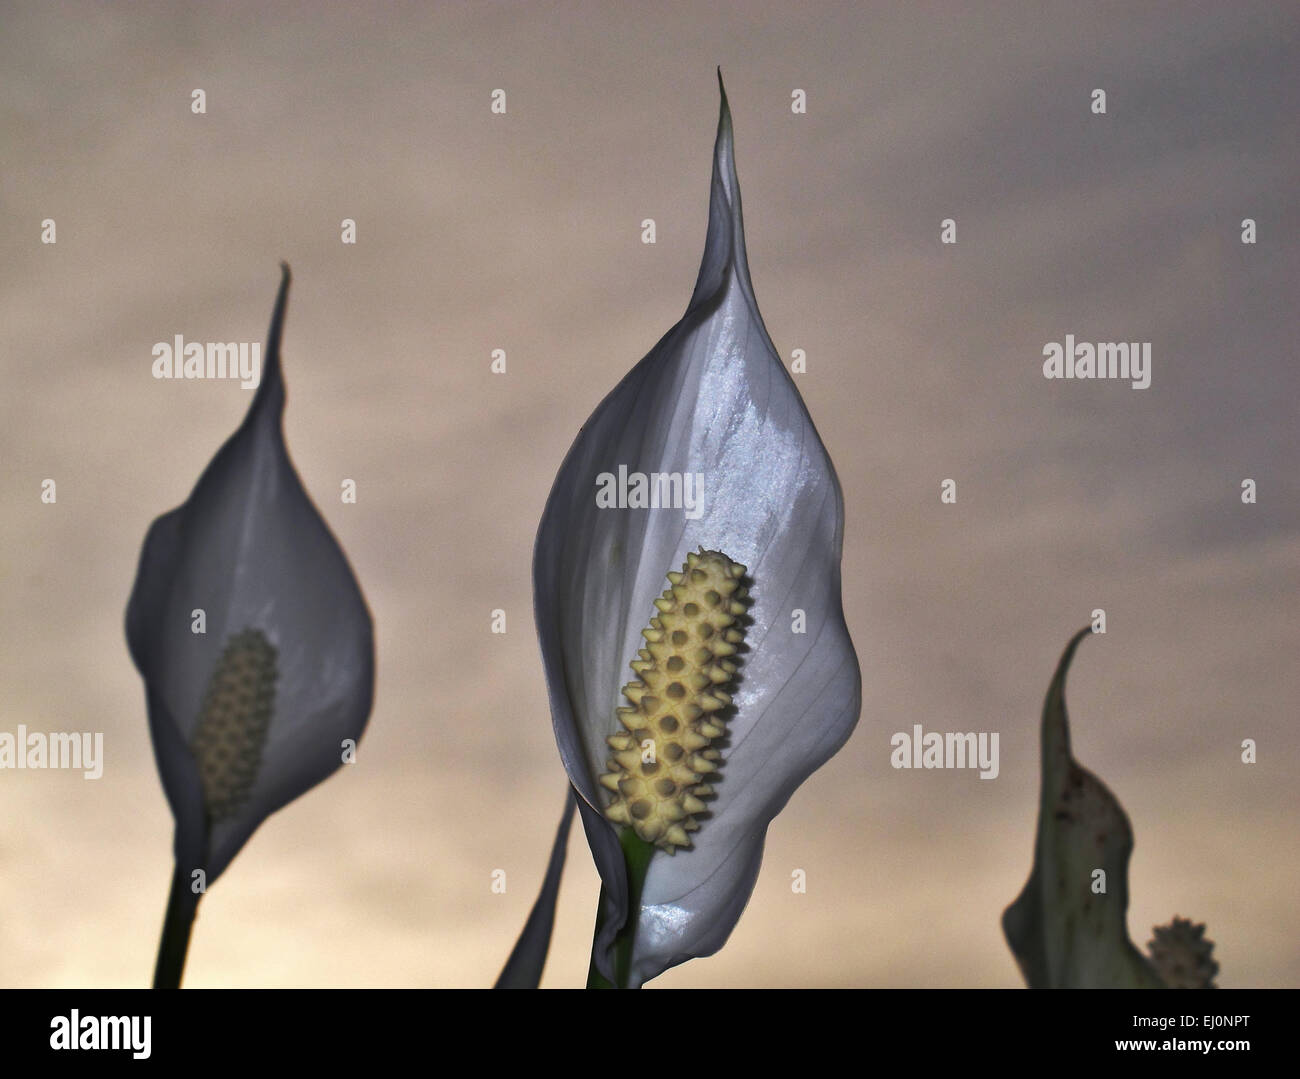 Flower, Spatiphyllum, sombre, gloomy, grief, gray, concepts, symbol, abstract, - Stock Image